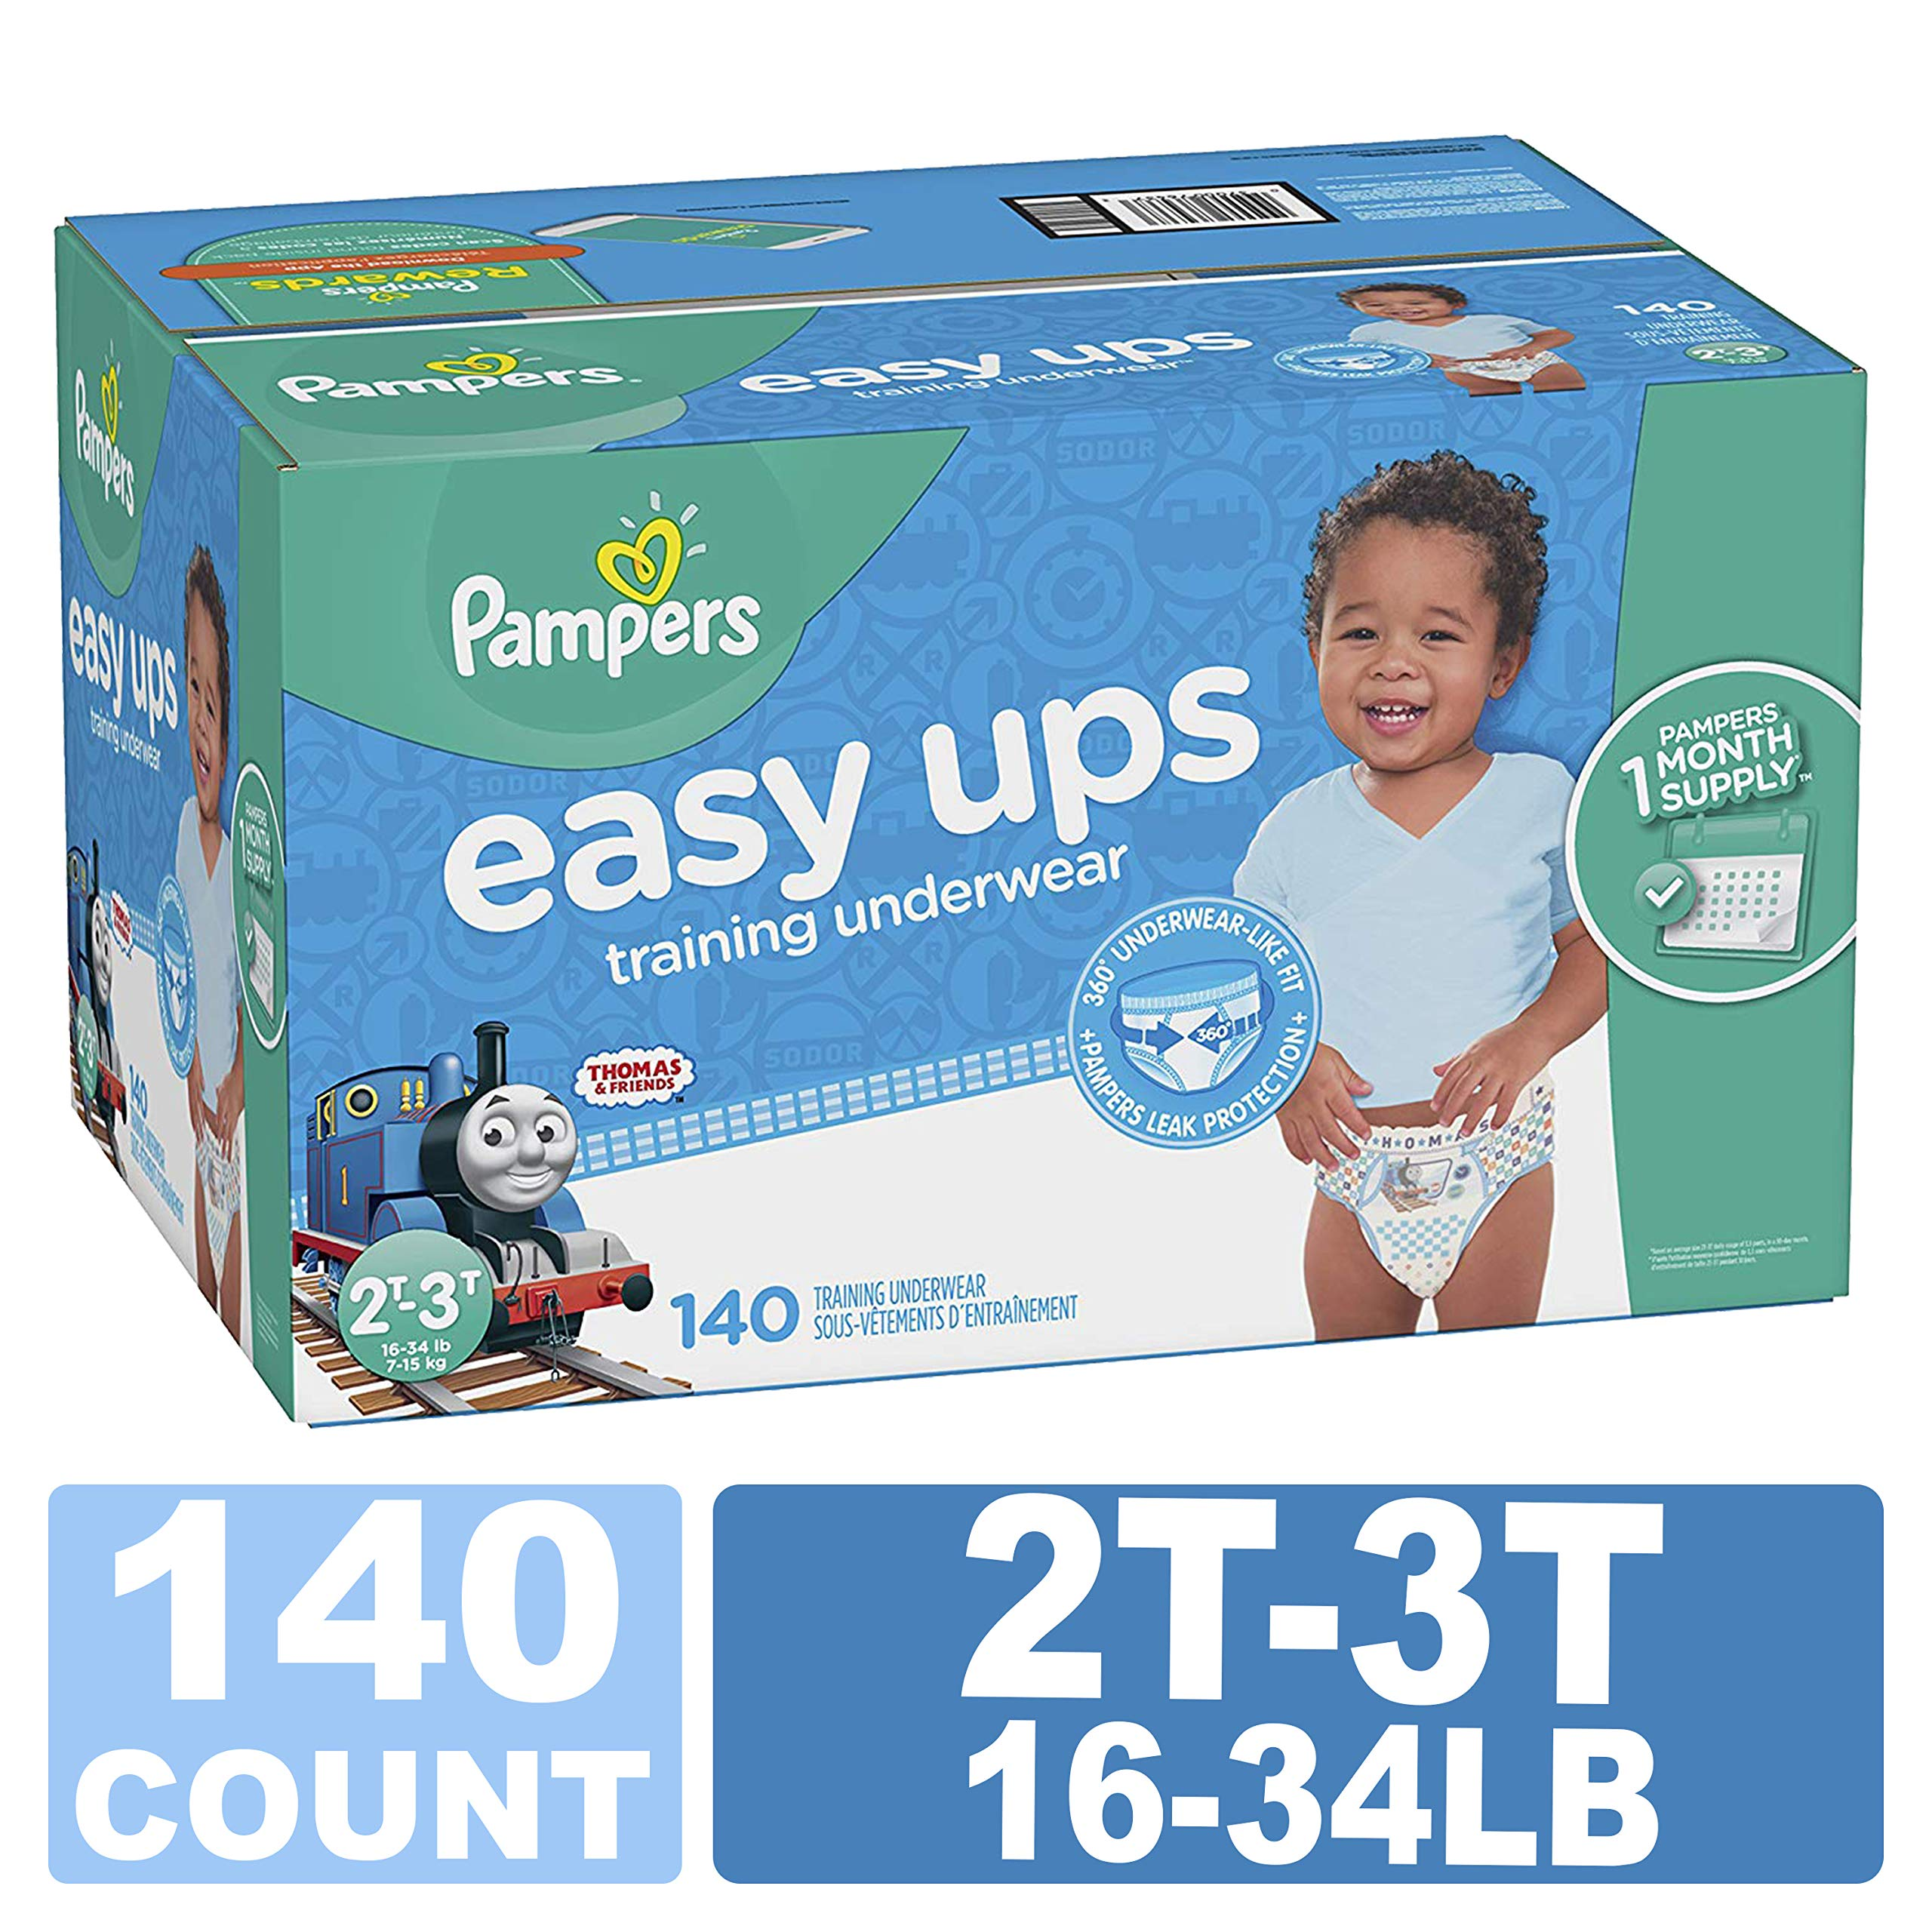 Pampers Easy Ups Training Pants Pull On Disposable Diapers for Boys, Size 4 (2T-3T), 140 Count, ONE Month Supply